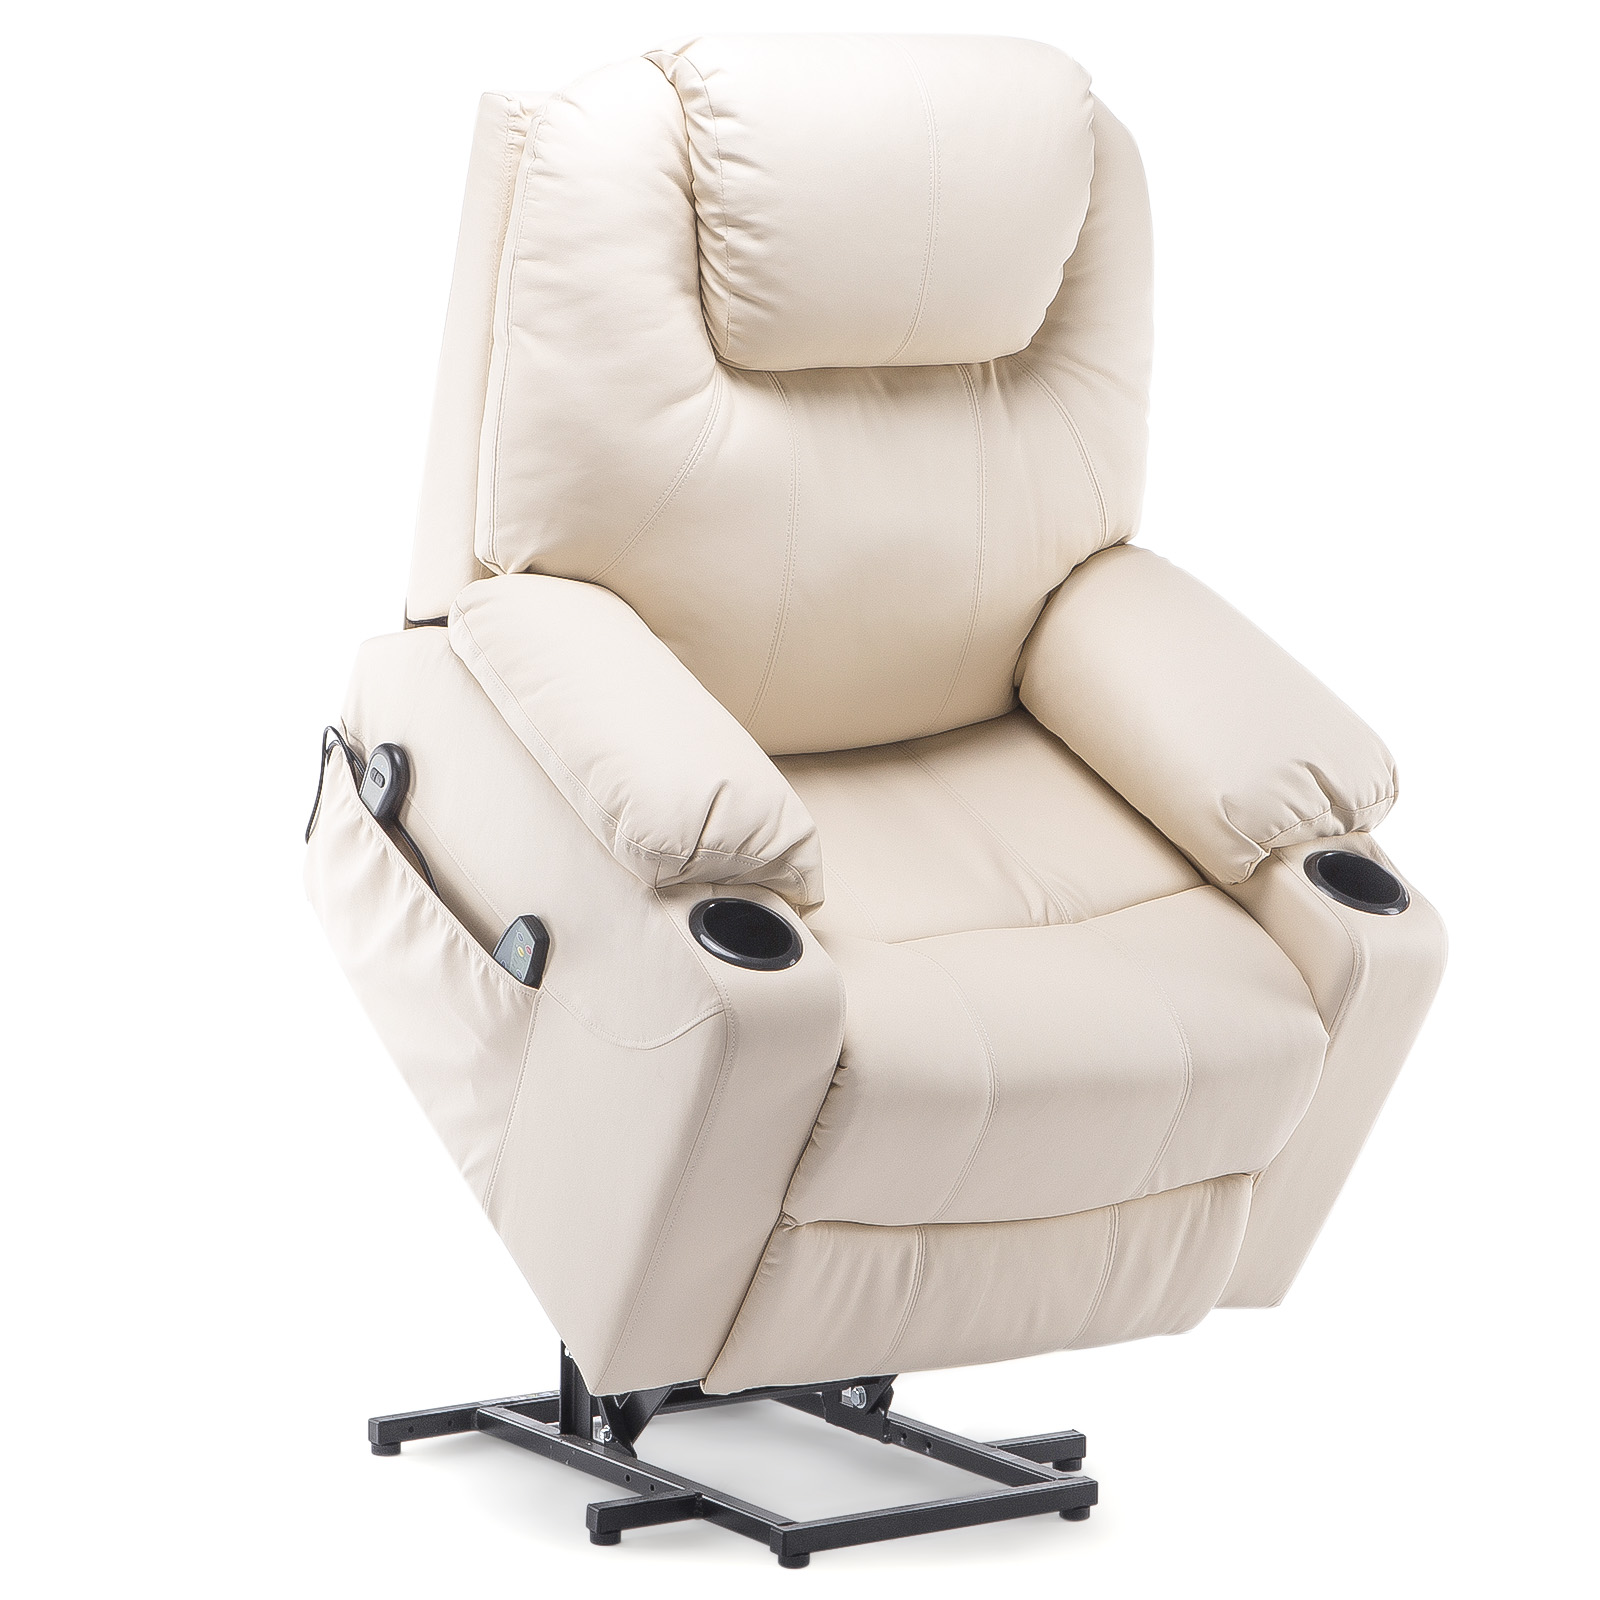 2021 Upgraded Electric Massage Chair Power Lift Recliner Chairs Leisure Soft Sofa Full Body Shiatsu Lounge Armchair for Elderly 10